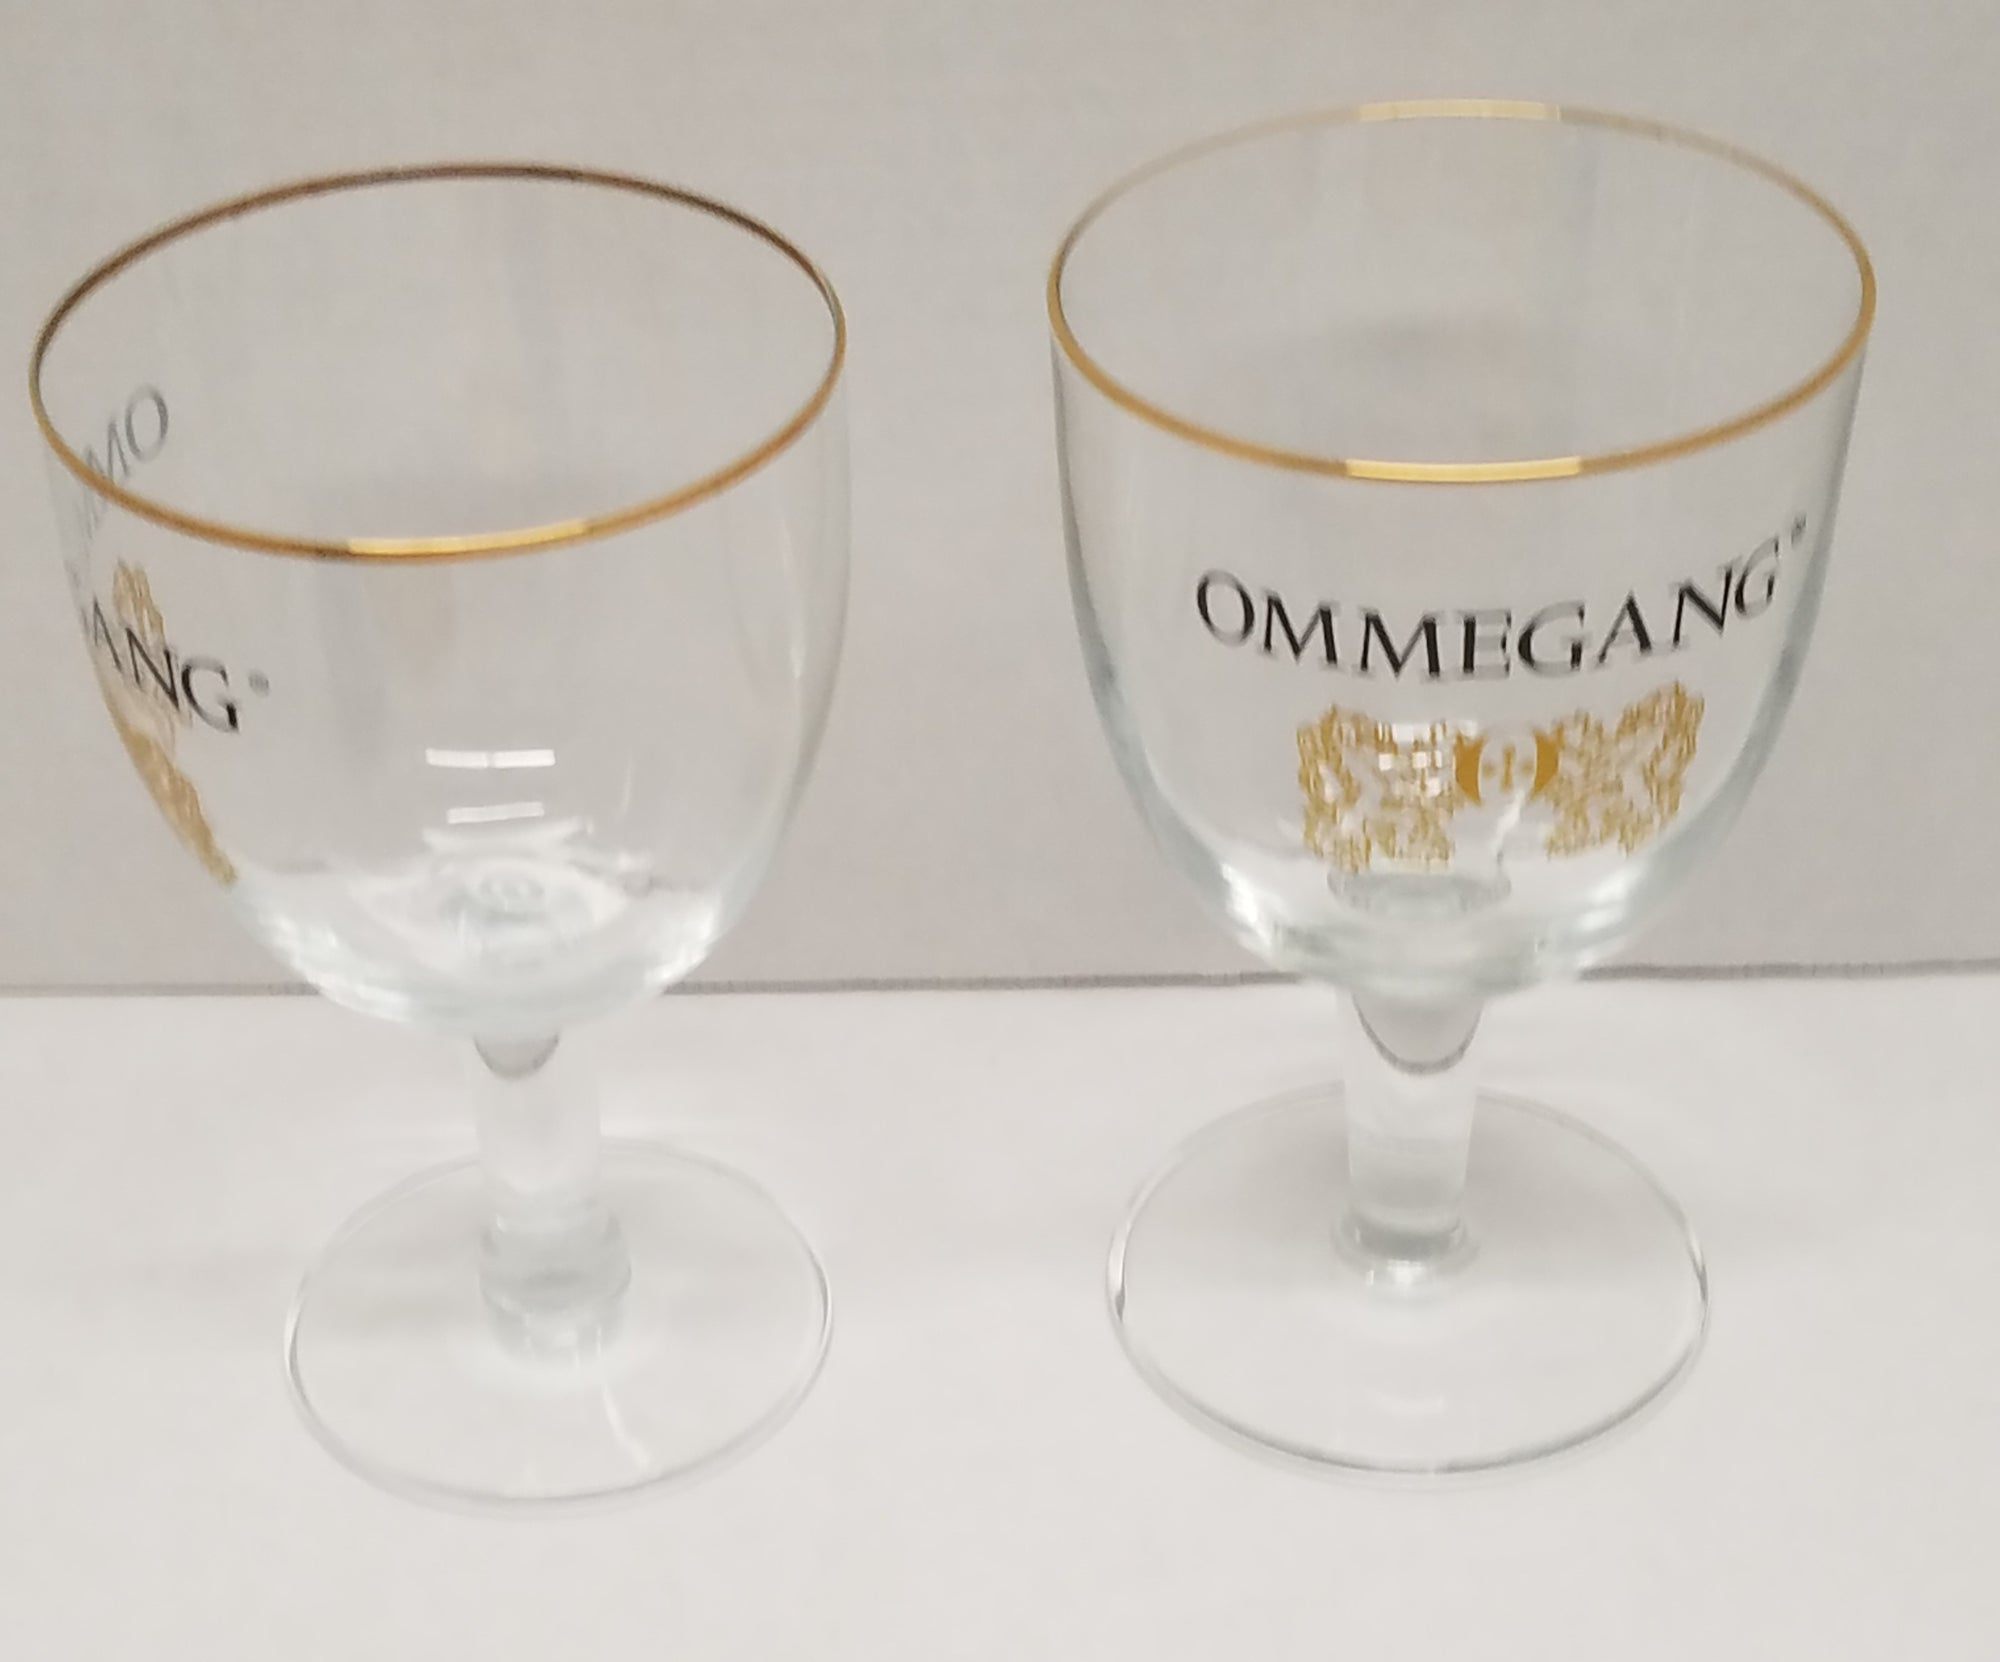 Ommegang Gold Rim Goblet Beer Glasses Set of 2